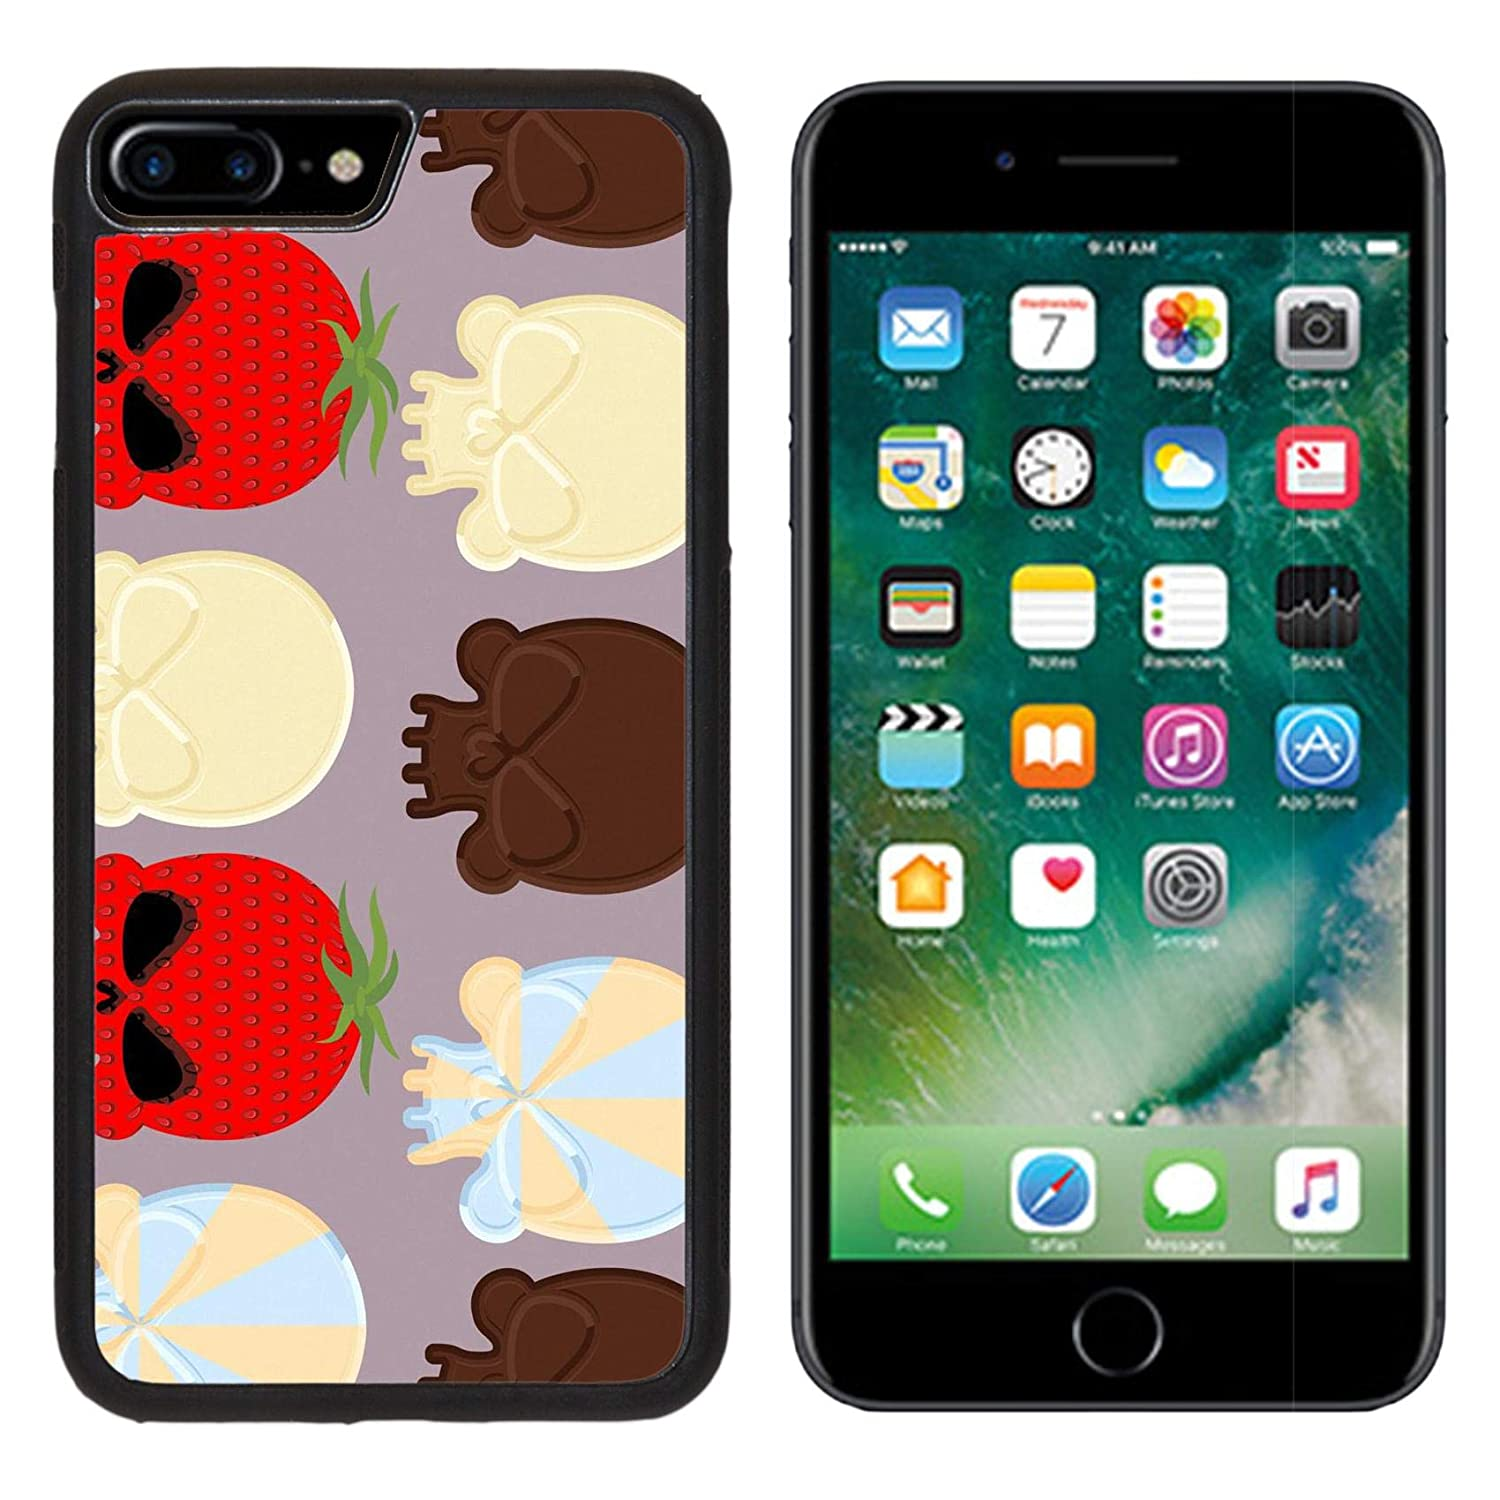 Luxlady Apple iPhone 8 Plus Case Aluminum Backplate Bumper Snap iphone8 Plus Cases ID: 43128818 Sweet Candy Skulls Seamless Pattern Head Skeleton Made of Chocolate and strawb